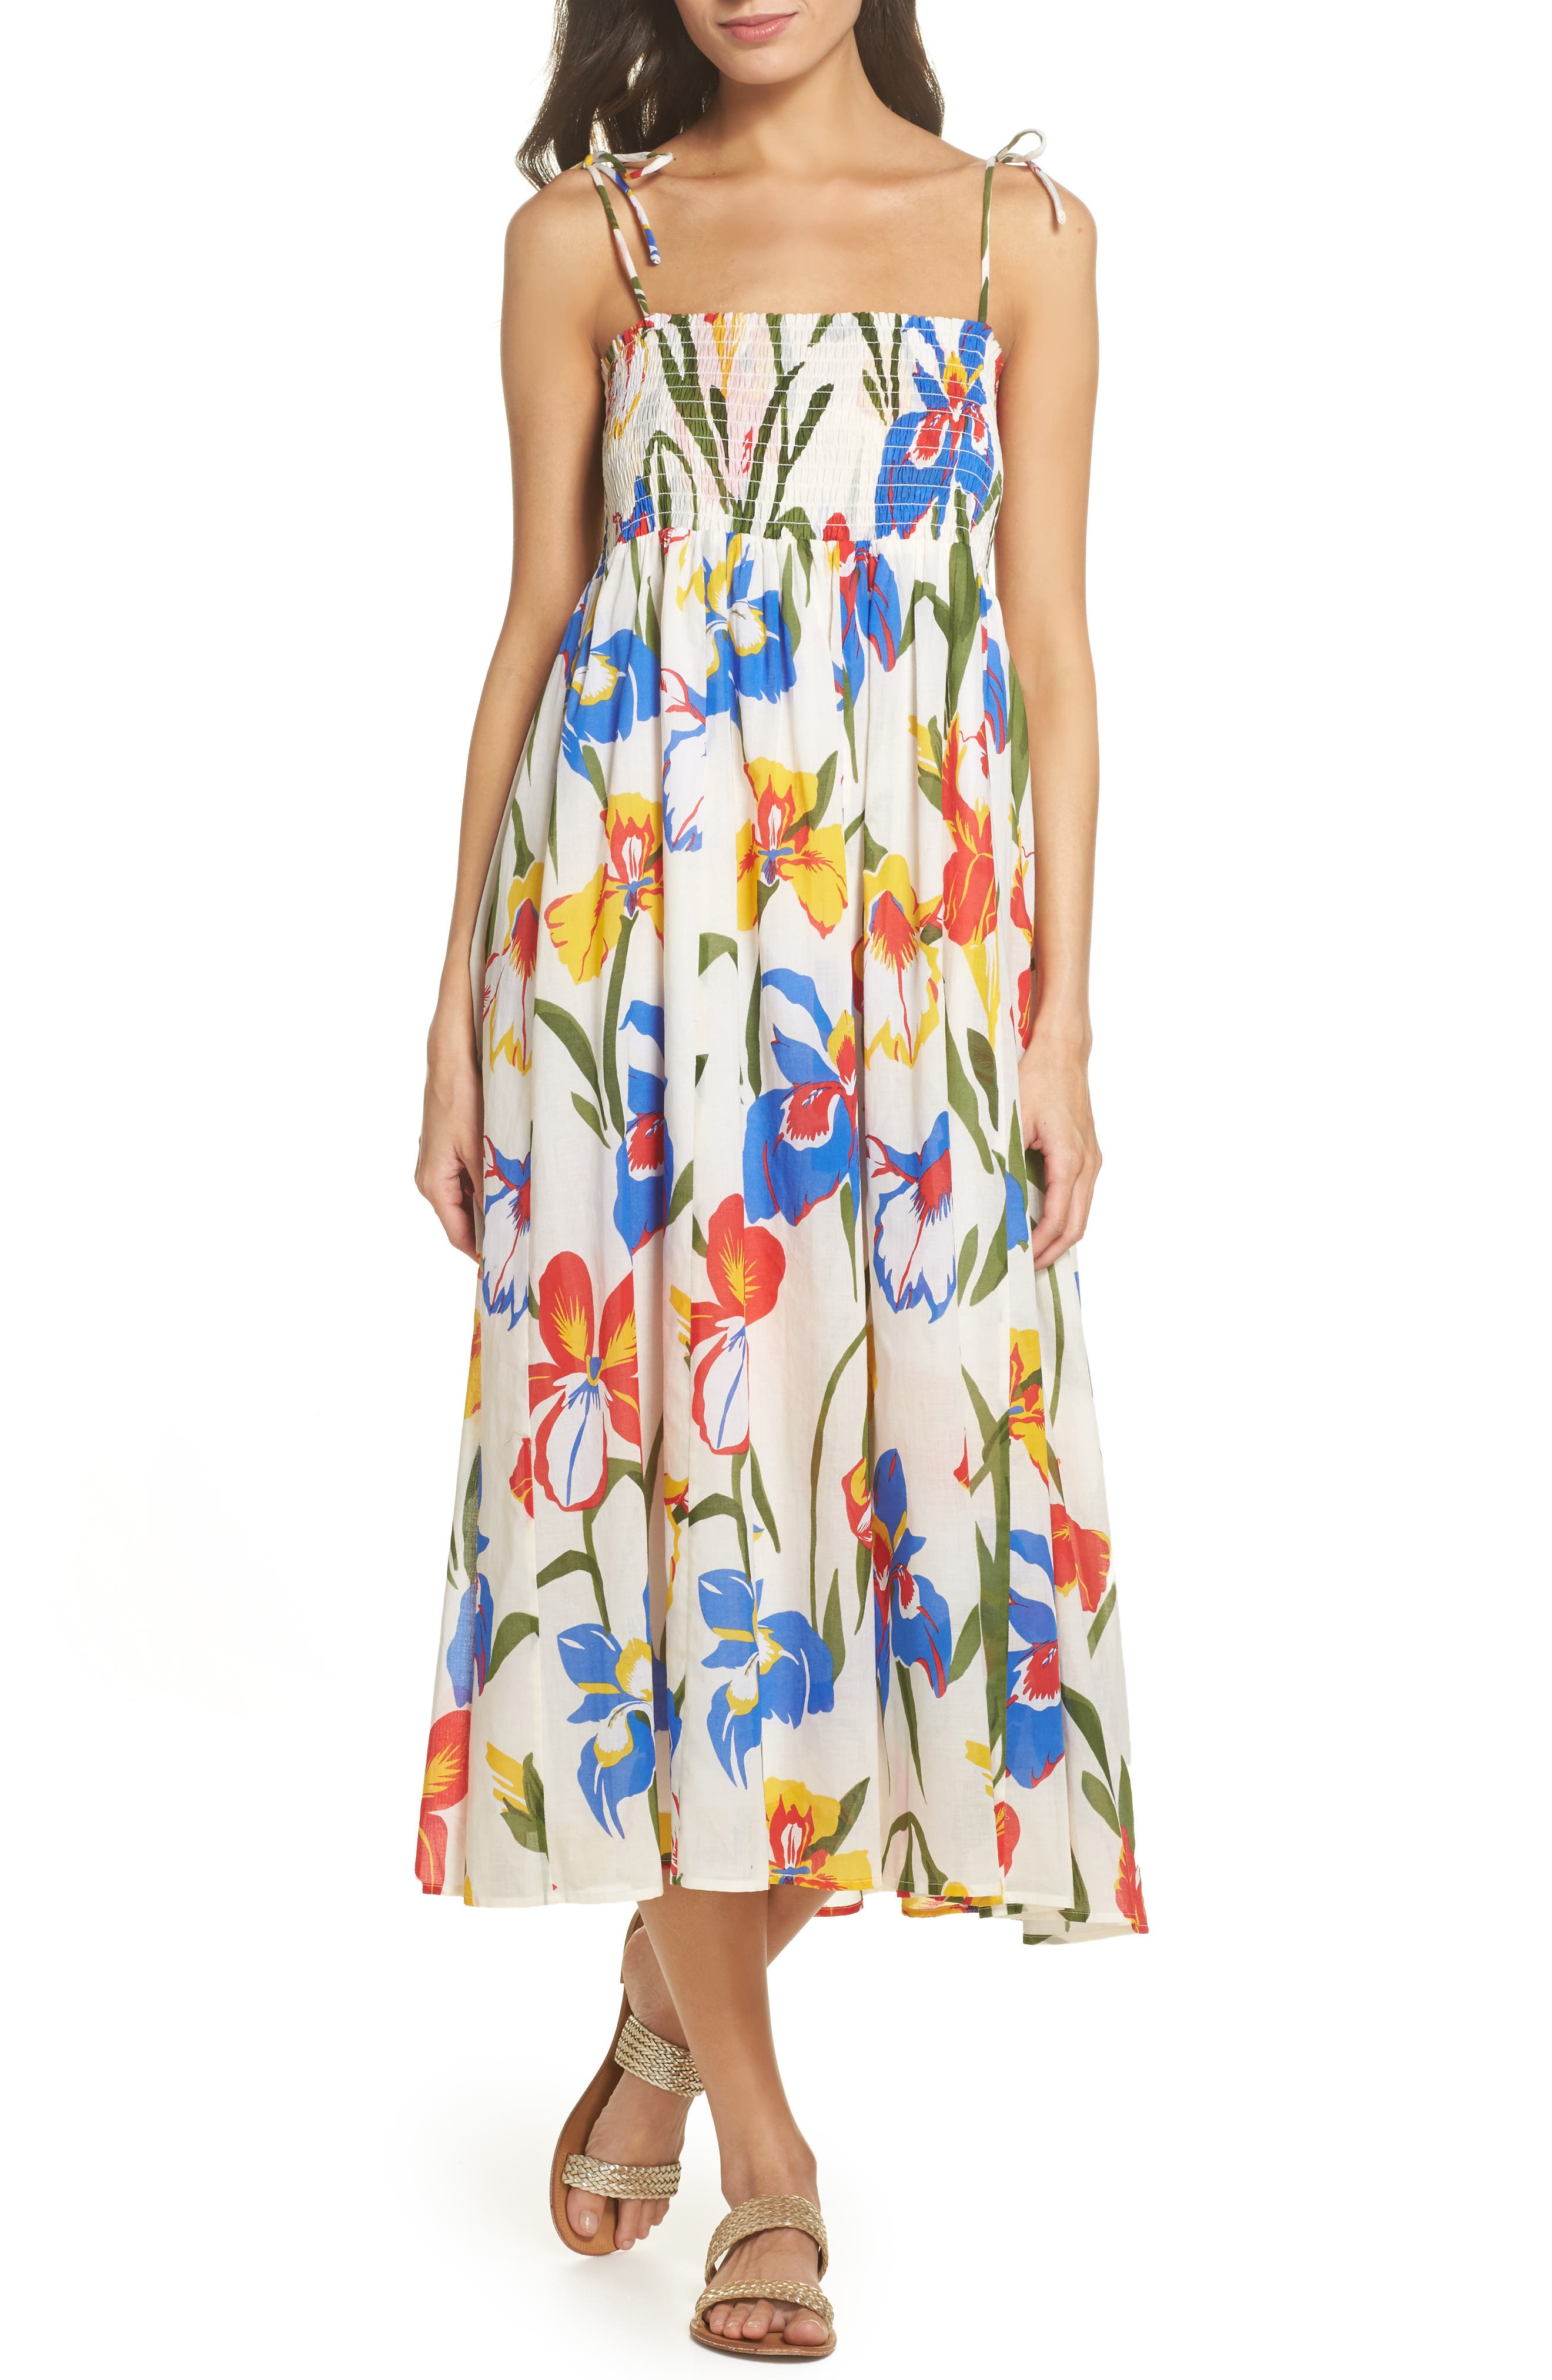 Convertible Cover Up Dresses